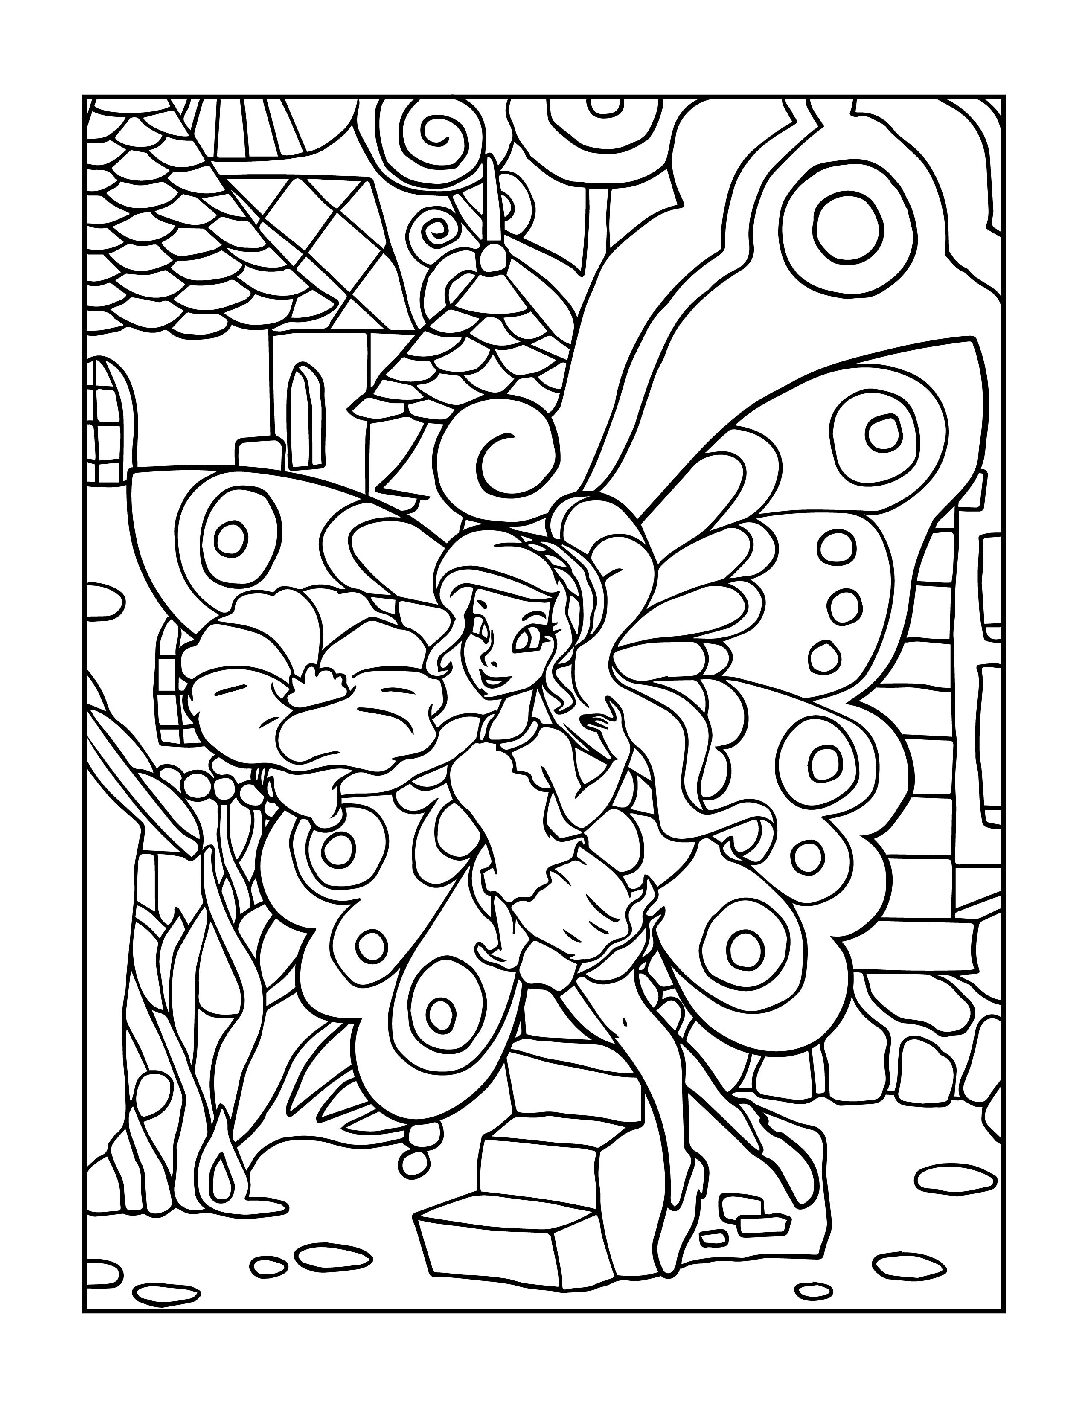 Coloring-Pages-Fairies-8-01-pdf Free Printable Fairy Colouring Pages